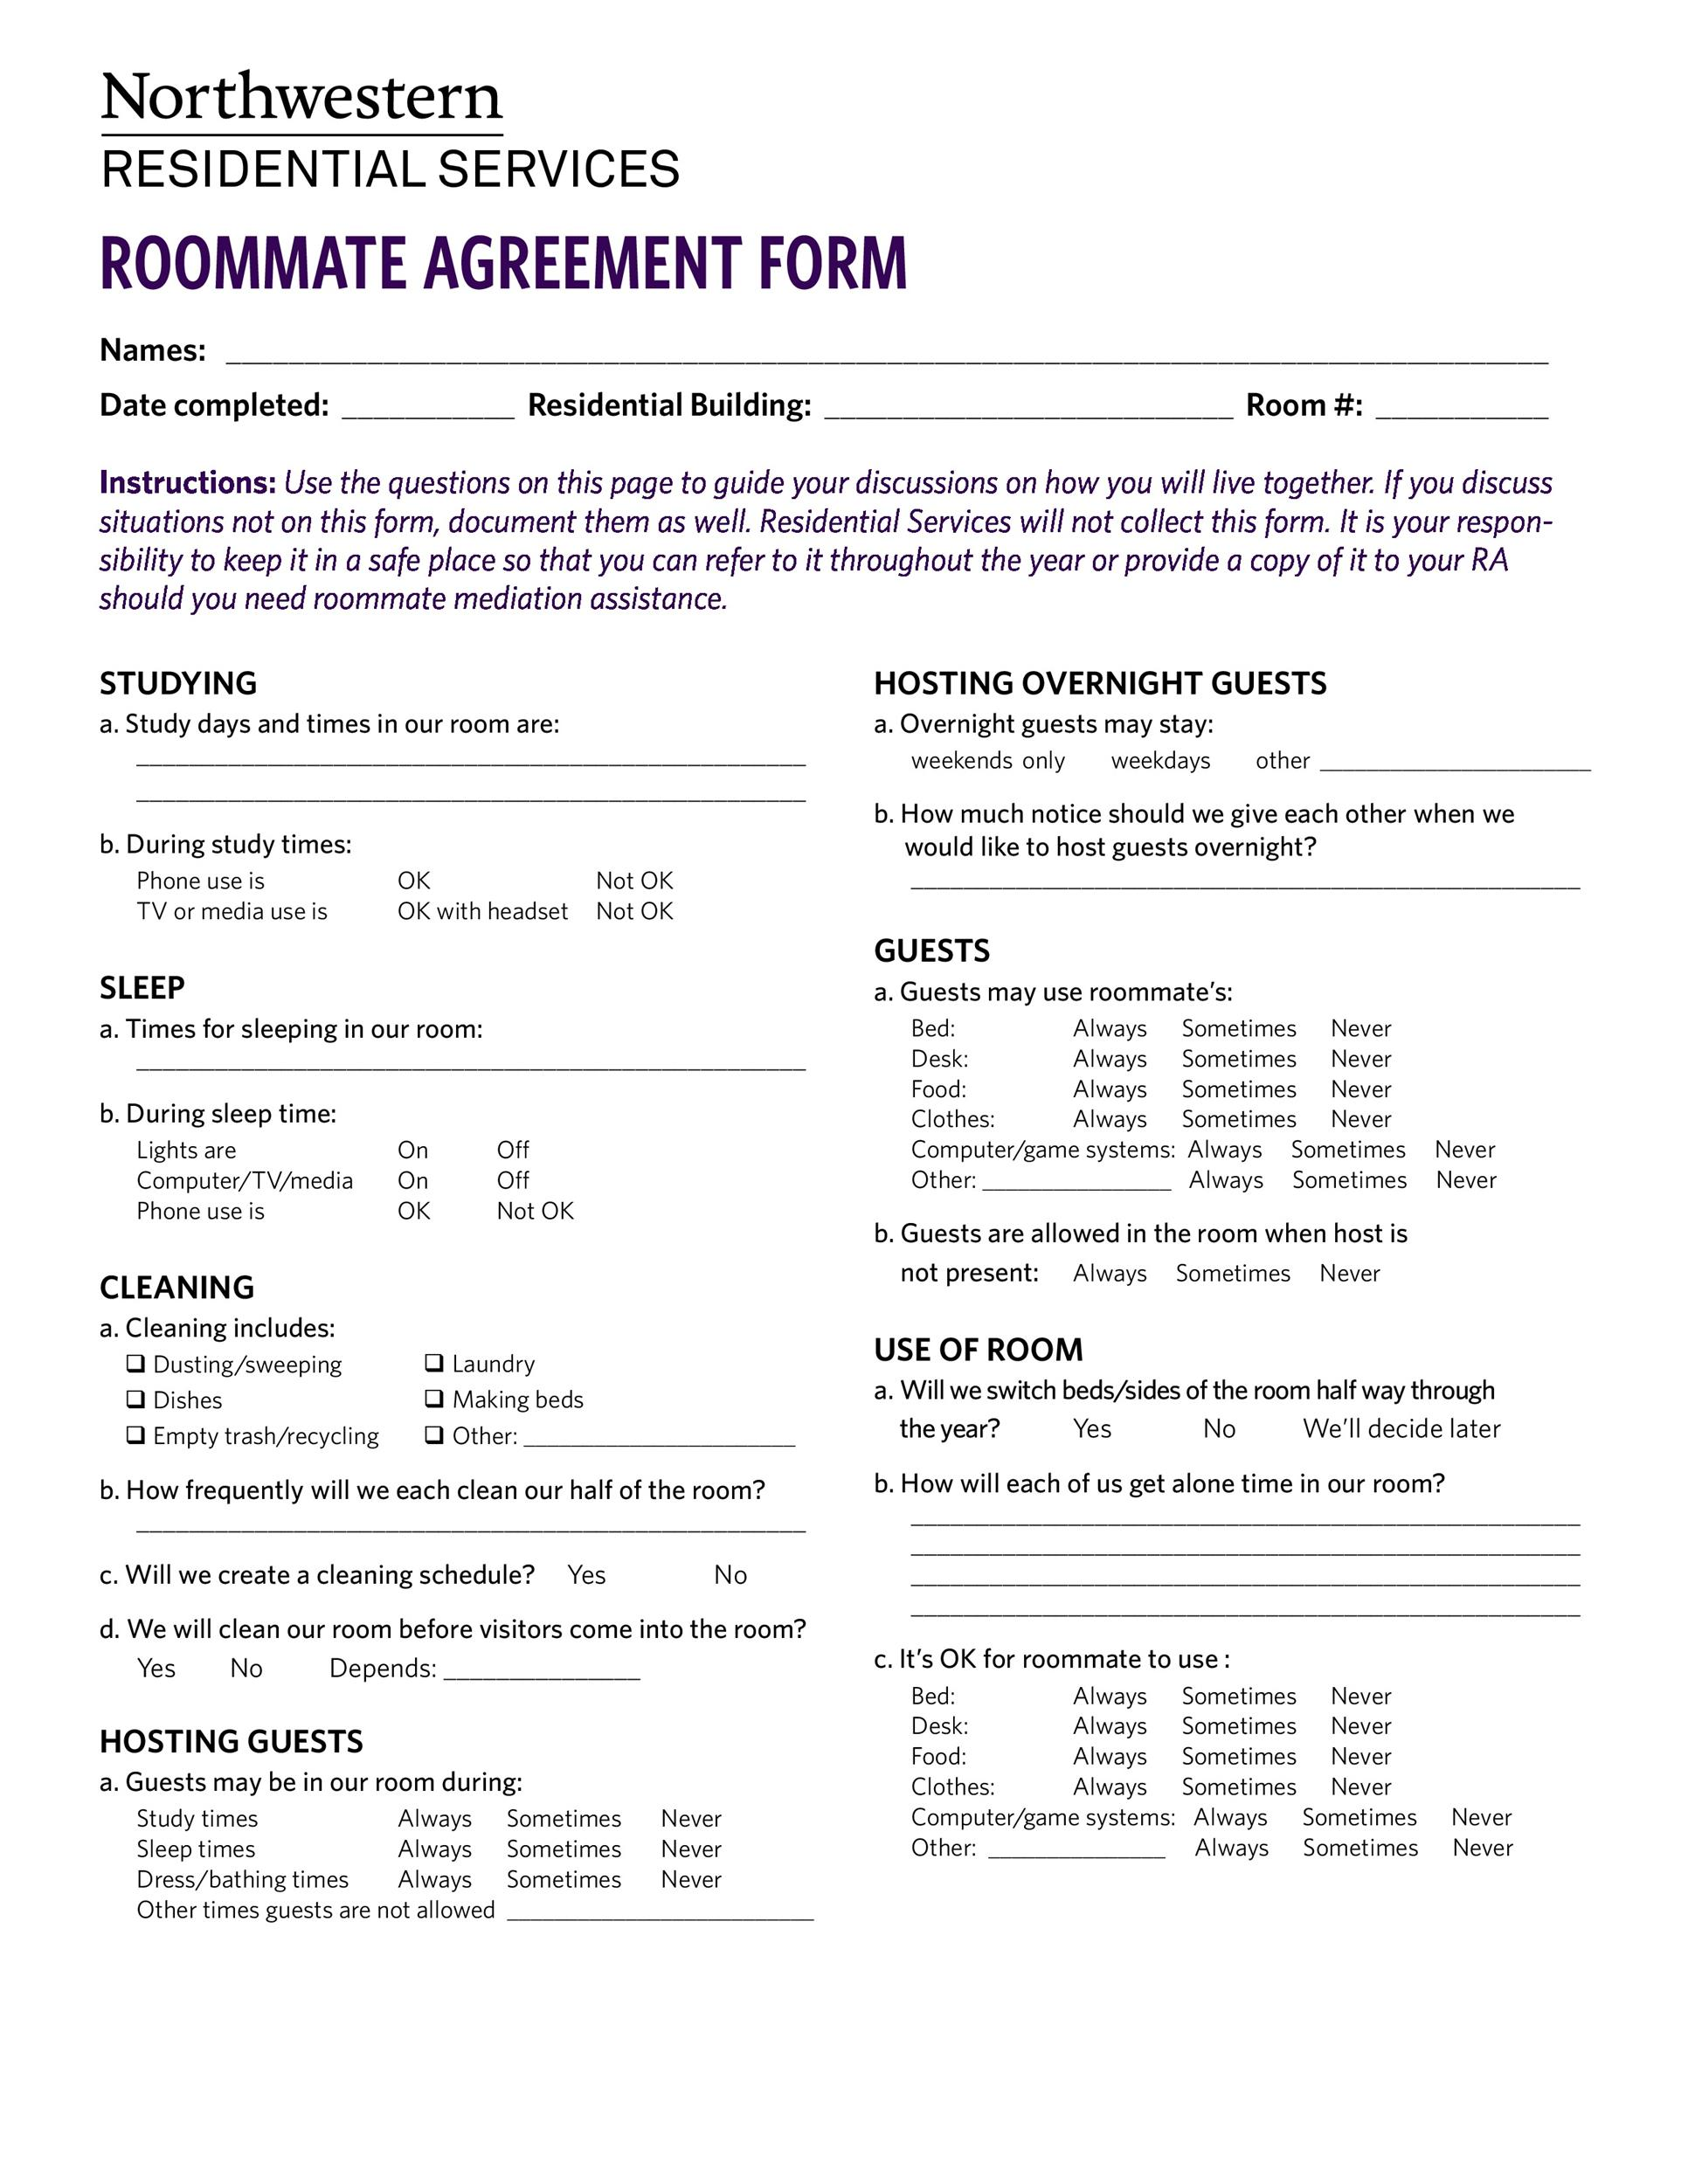 40 free roommate agreement templates forms word pdf for Roommate agreement template free